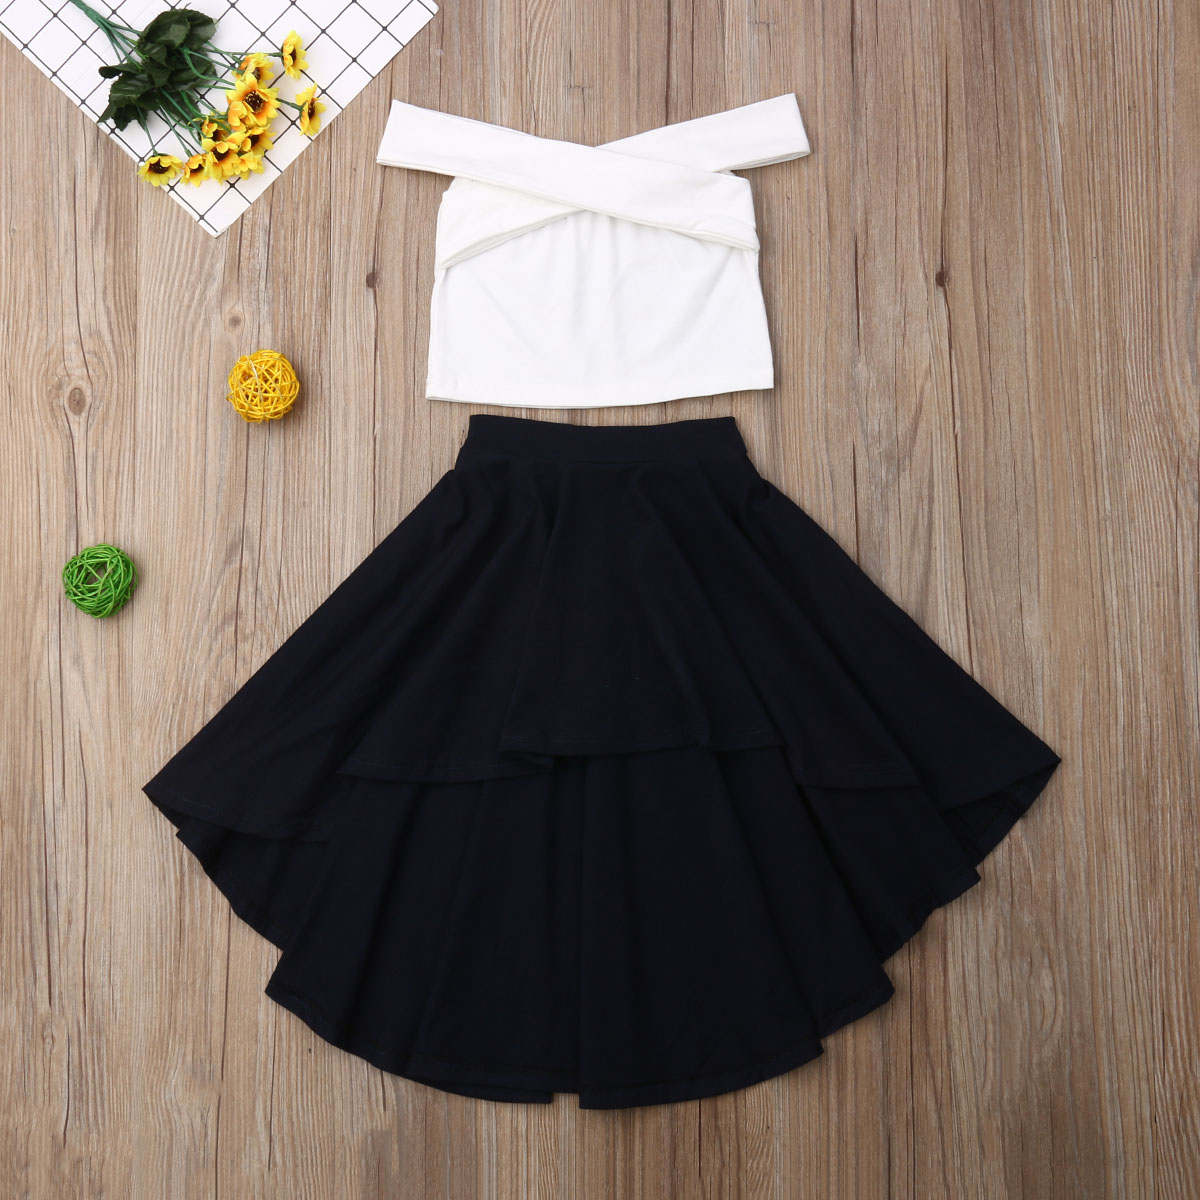 Emmababy Summer Toddler Baby Girl Clothes Solid Color Off Shoulder Vest Tops Ruffle Skirt 2Pcs Outfits Clothes Summer